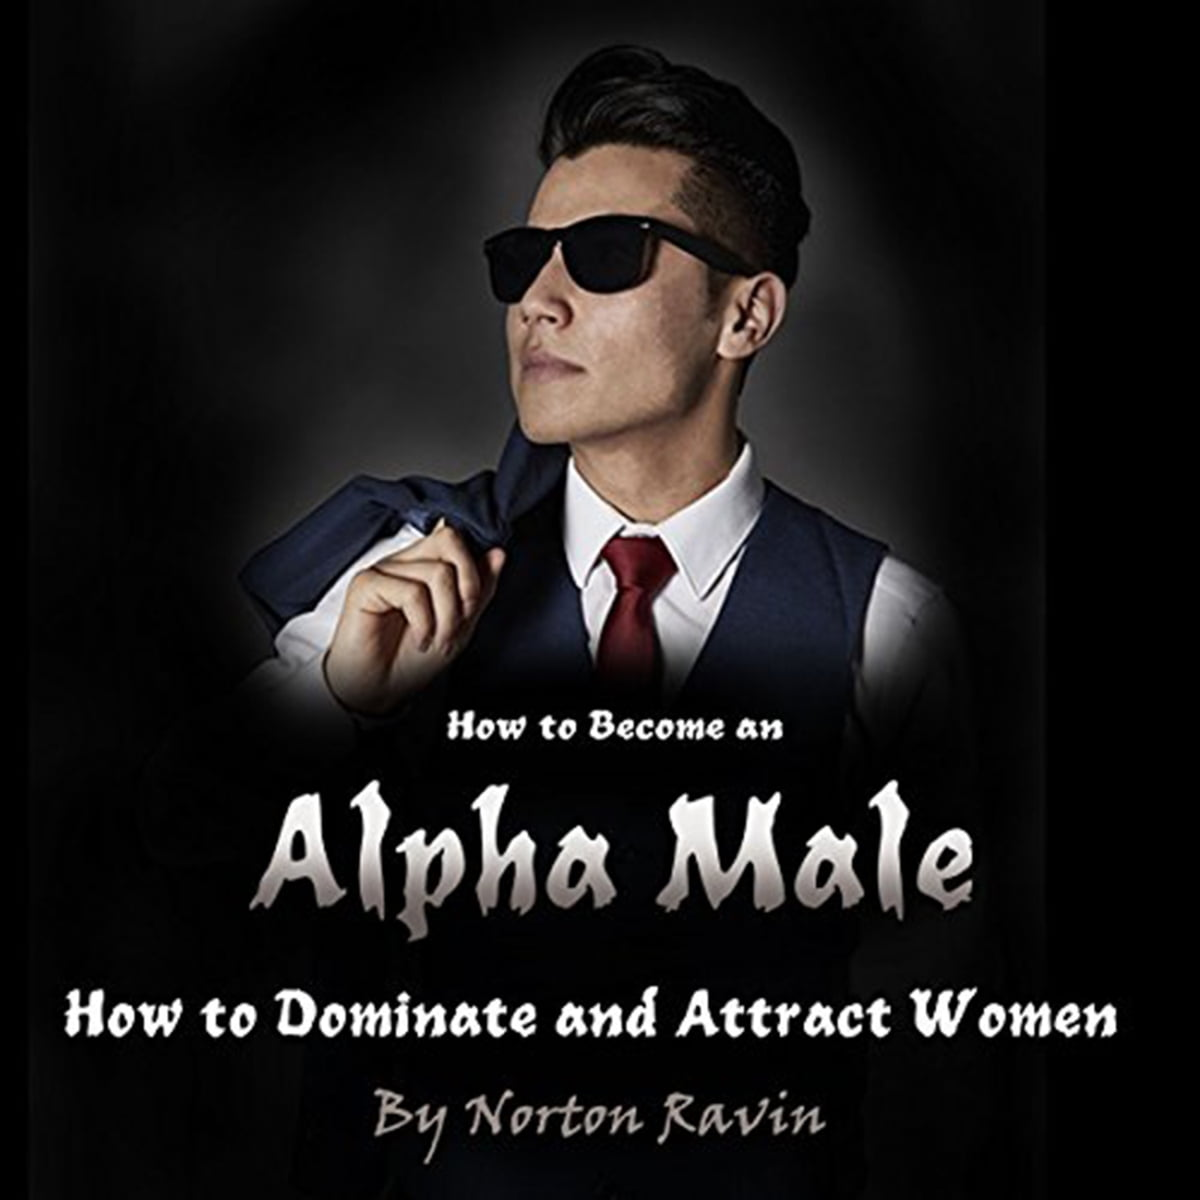 what kind of woman do alpha males like